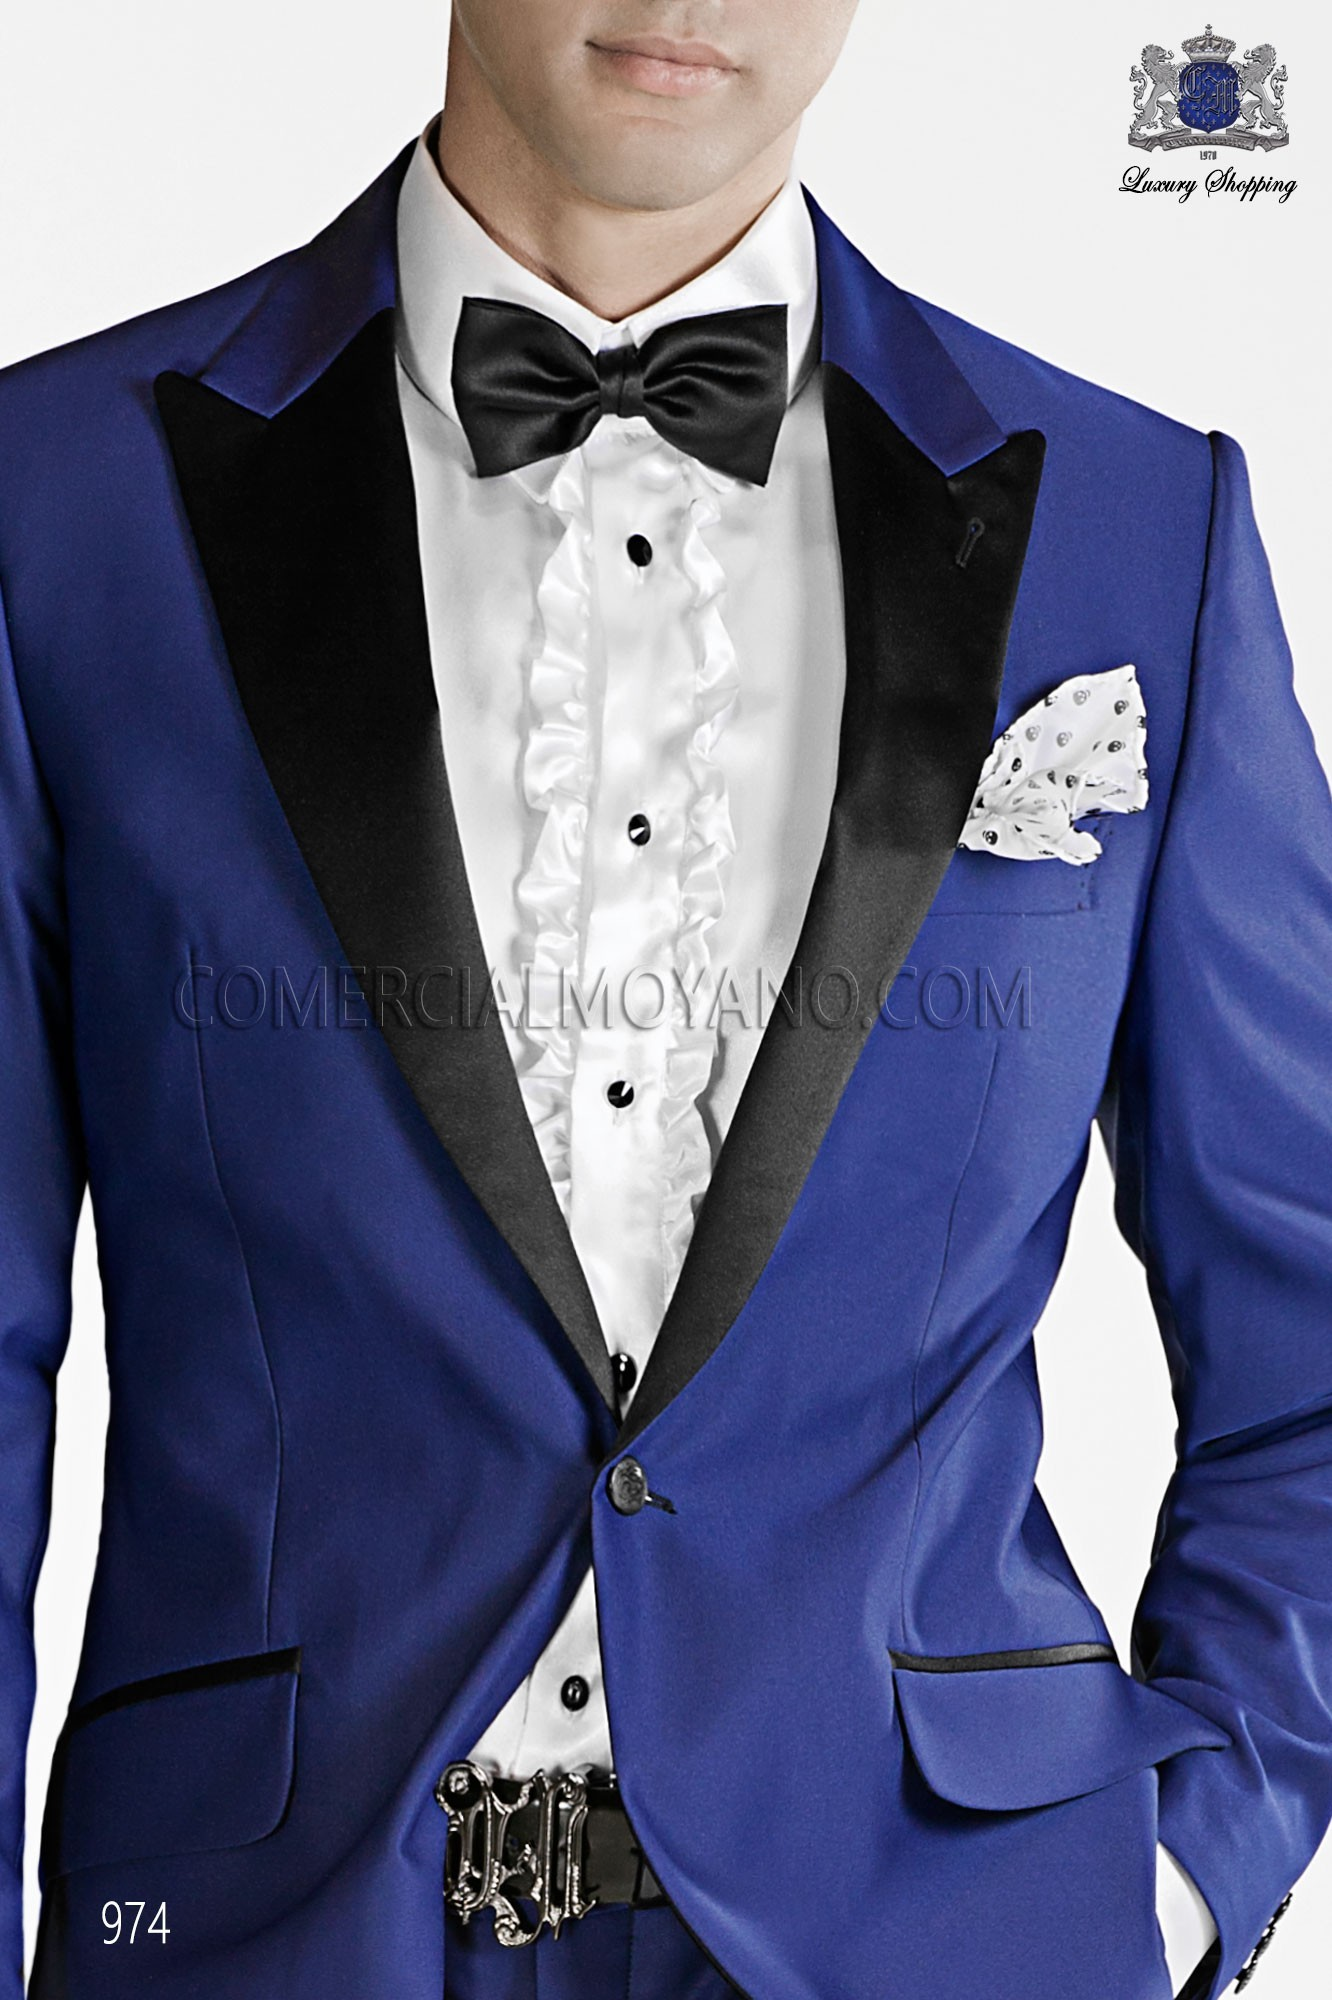 Italian emotion blue men wedding suit, model: 974 Ottavio Nuccio Gala Emotion Collection